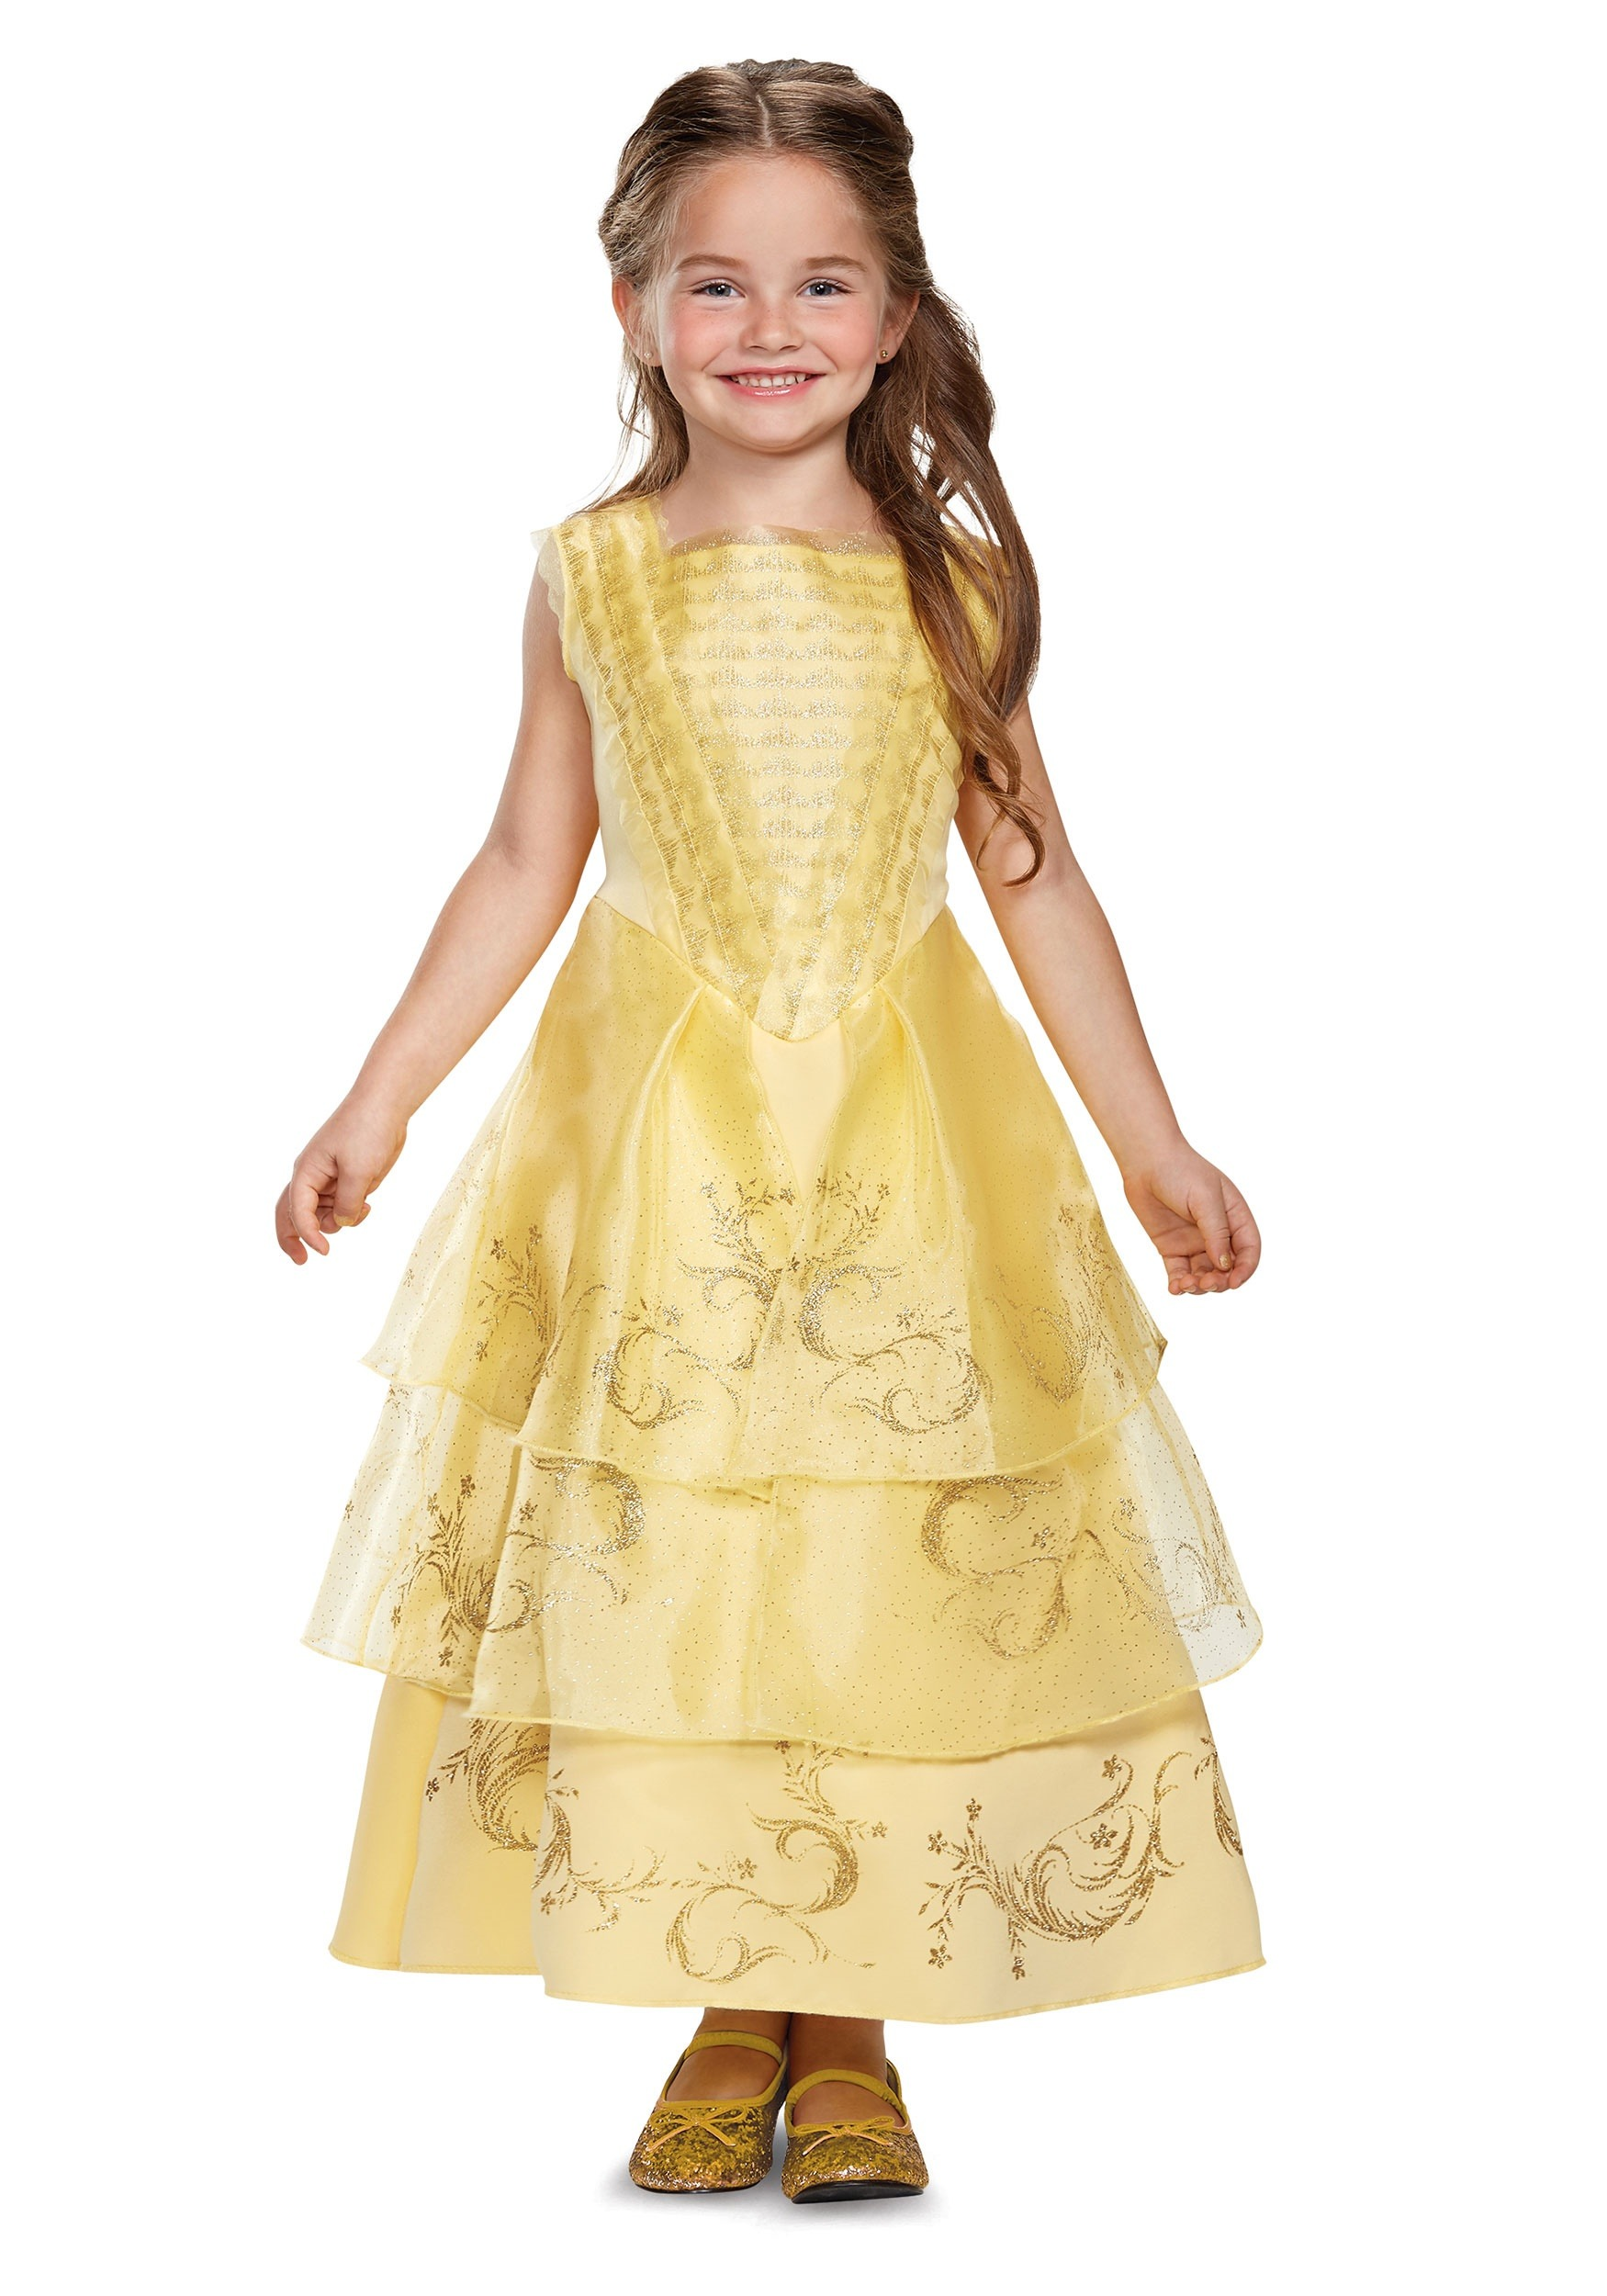 Girls Belle Ball Gown Deluxe Costume